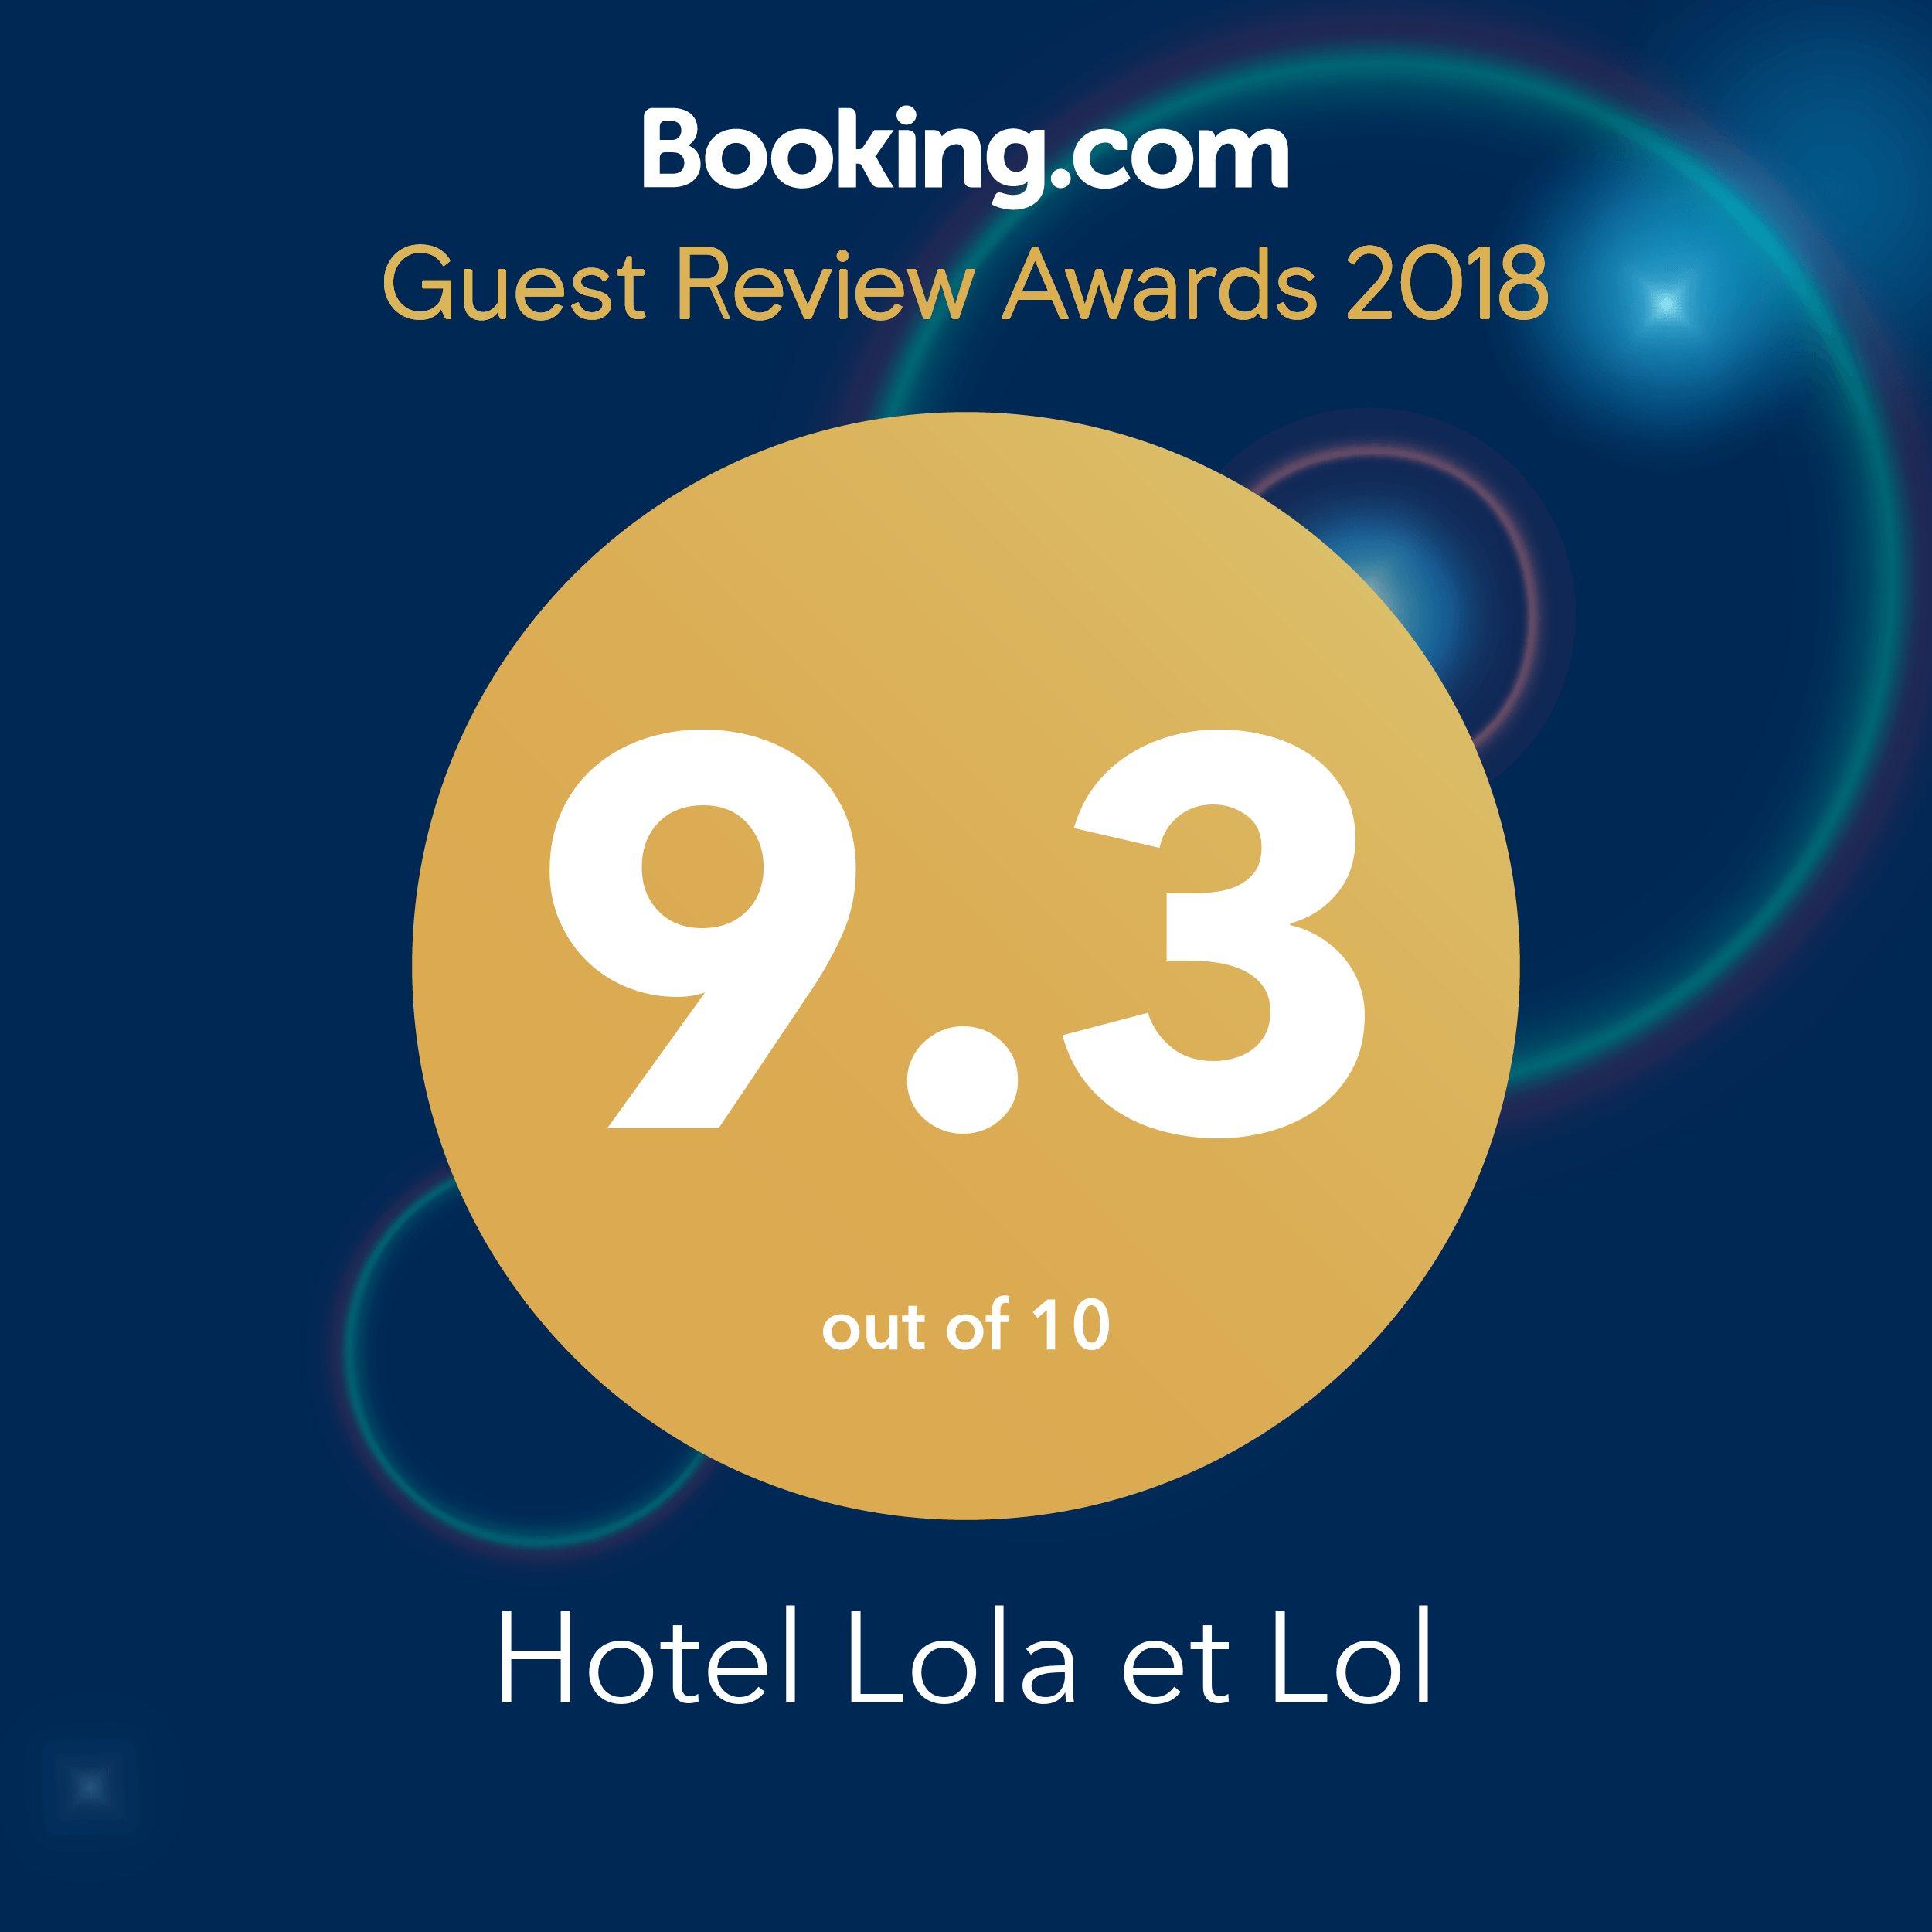 Guest Review Awards 2018 - Lol et Lola Hotel